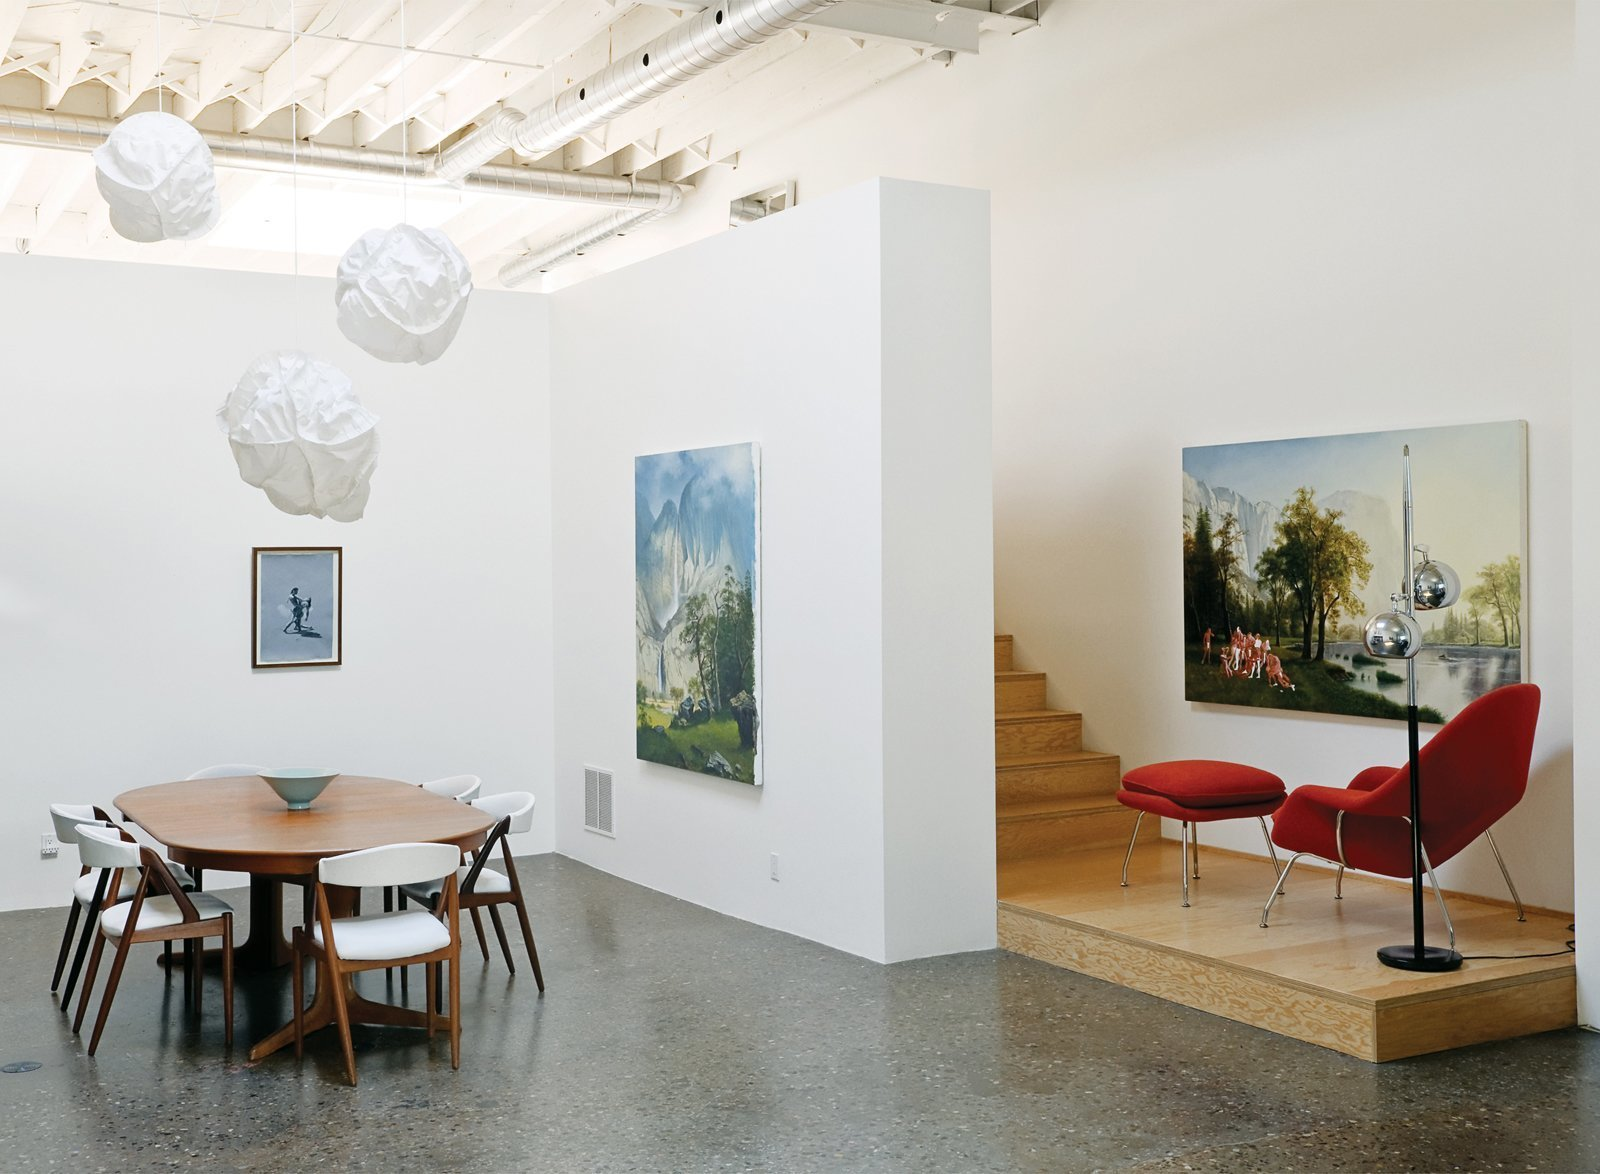 Photo 2 of 7 in 6 Main Things To Consider When Designing Your Home Art Gallery